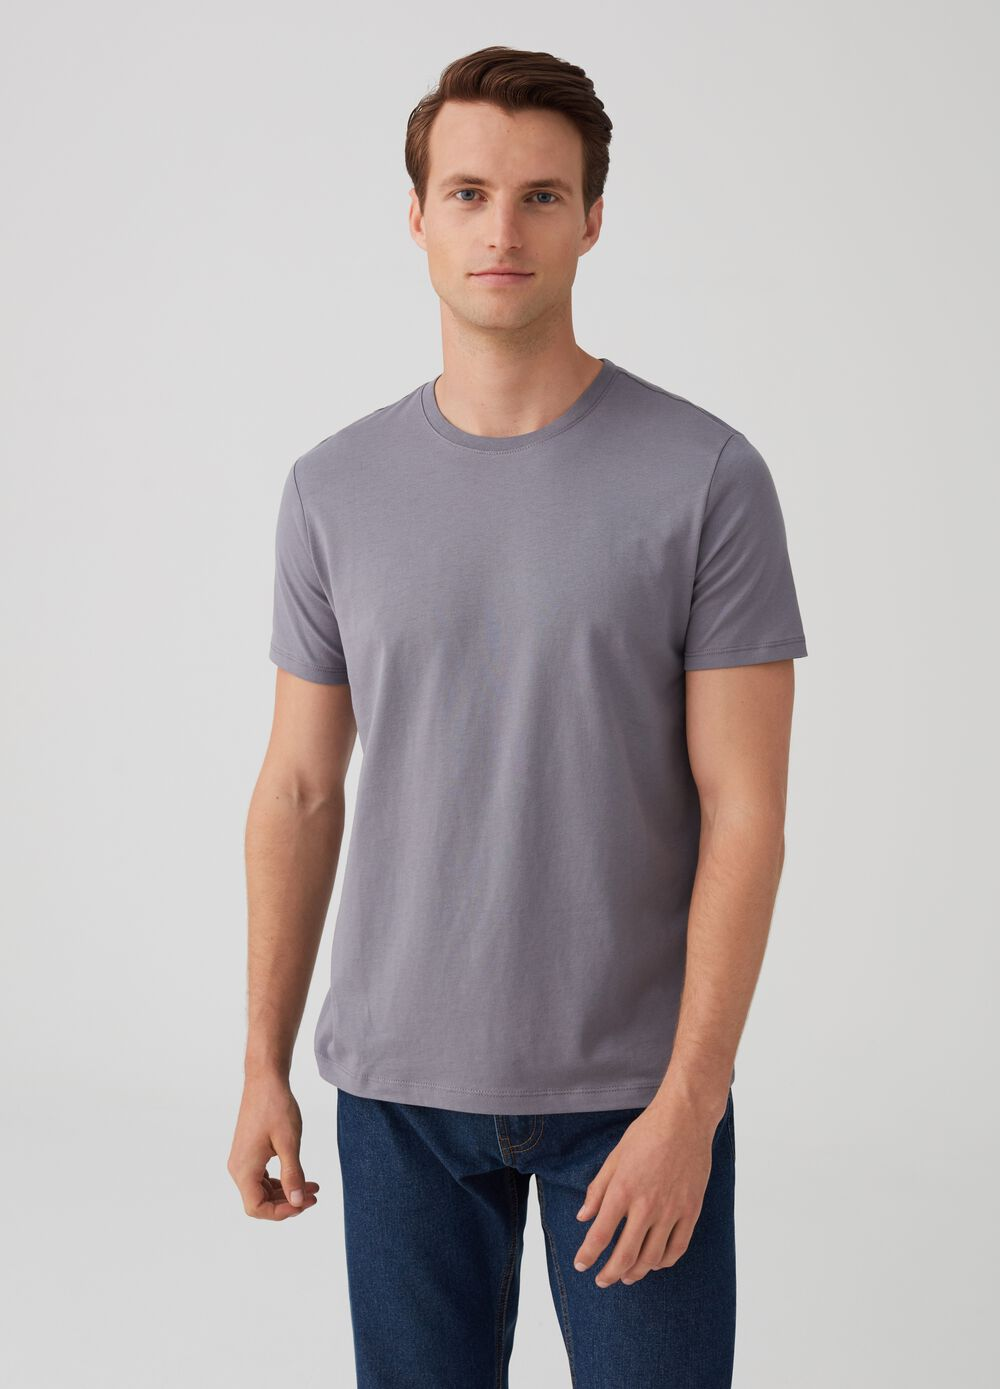 100% Supima cotton T-shirt with round neck